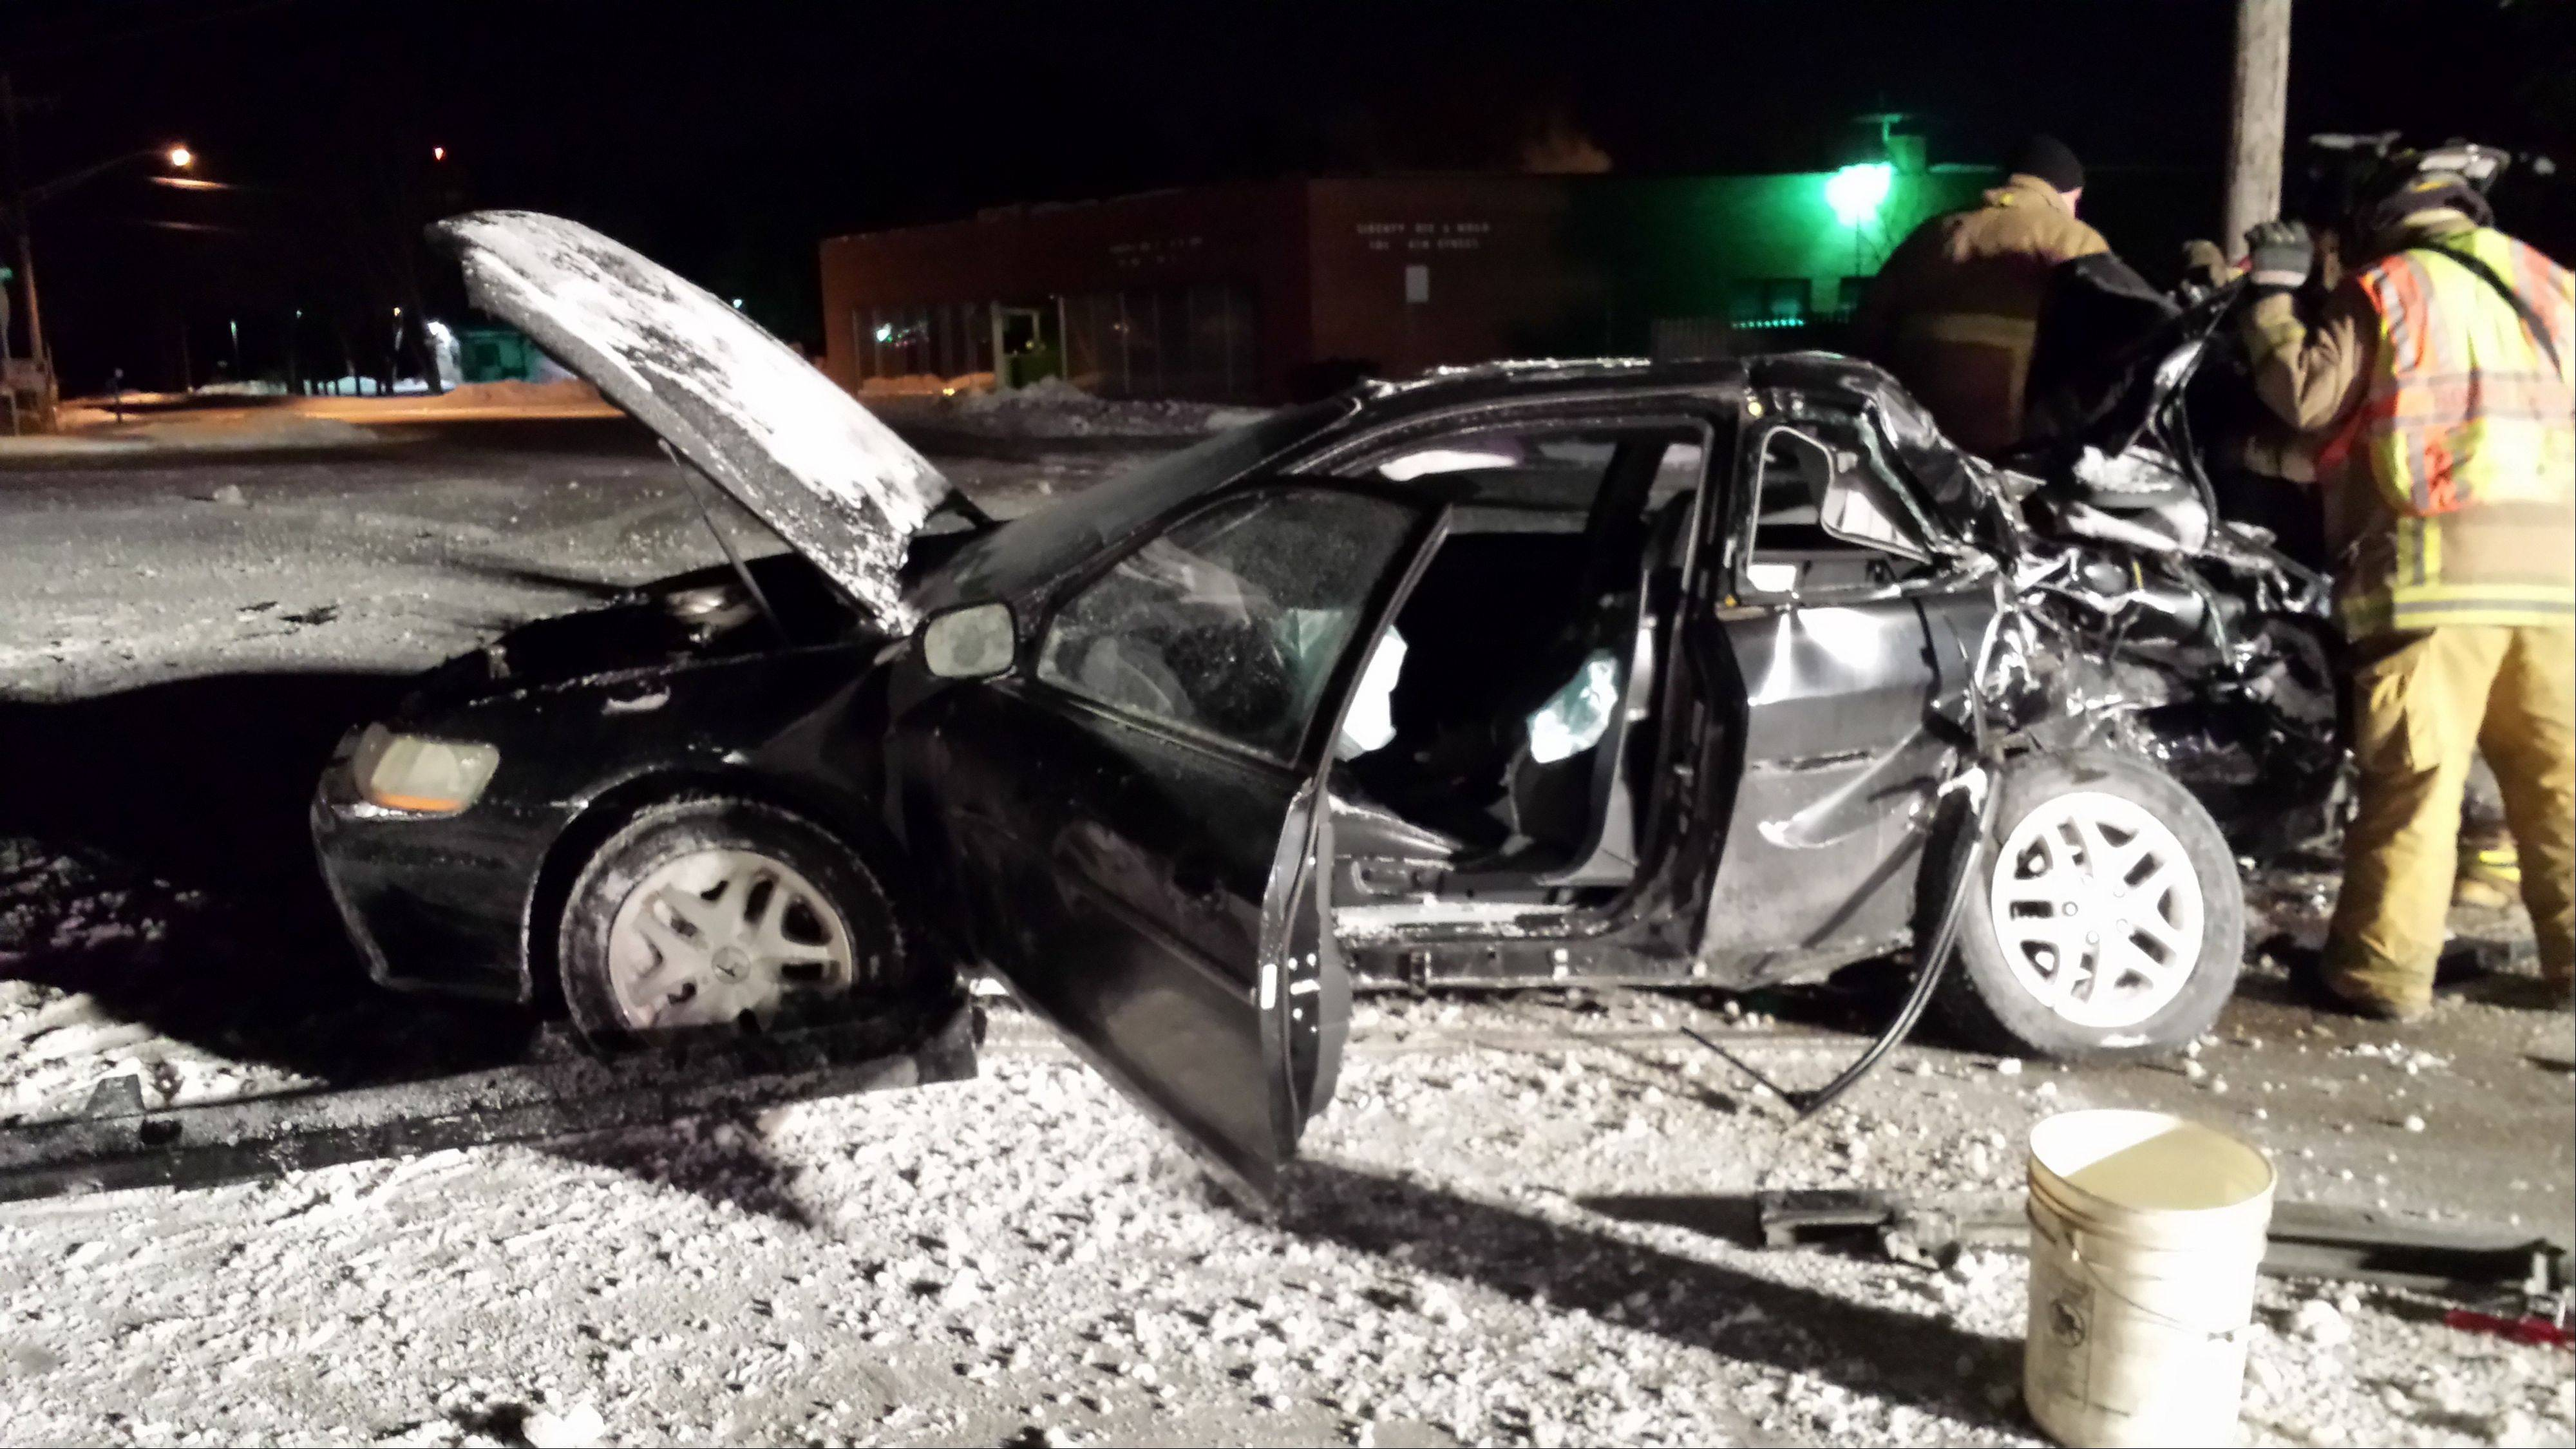 A Lake County Sheriff's detective escaped injury Monday night when his unmarked car became stuck on snow near railroad tracks in Round Lake Park and was struck by an oncoming Metra train. The car was not so fortunate. No injuries were reported aboard the train.